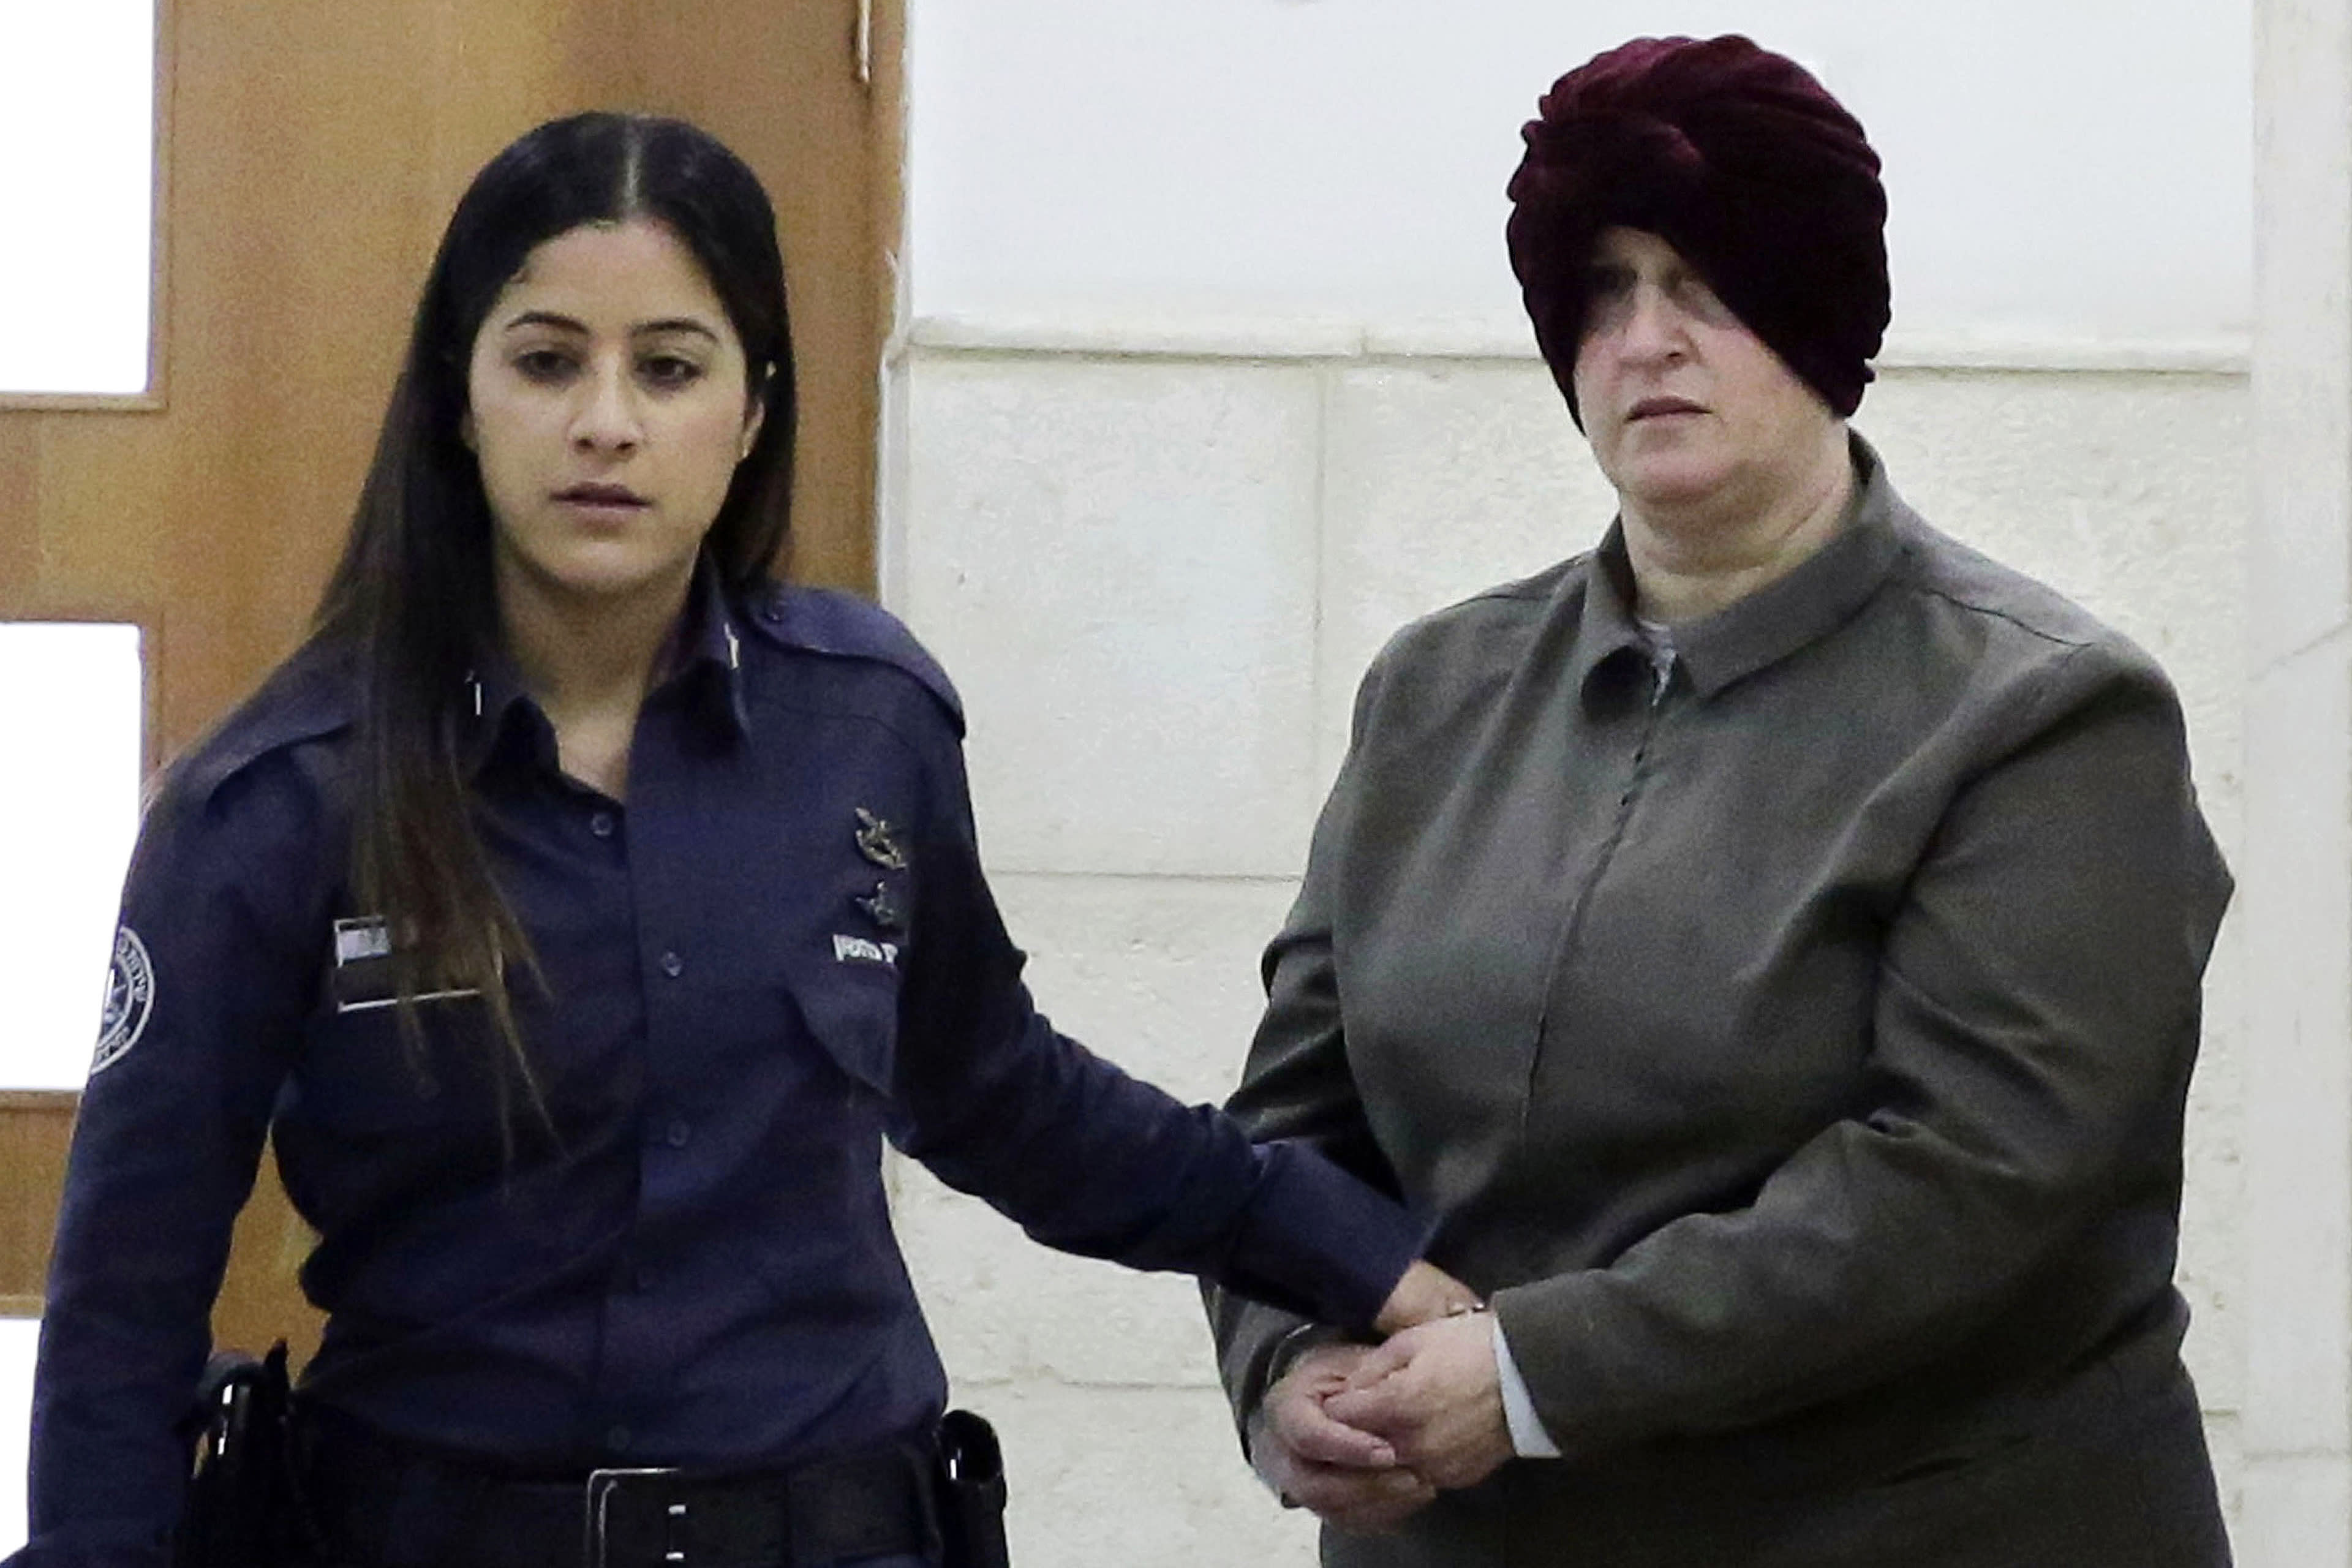 FILE - This Feb. 27, 2018, file photo, Australian Malka Leifer, right, is brought to a courtroom in Jerusalem. An Israeli court on Monday, Sert. 21, 2020 approved the extradition of the former teacher wanted in Australia on charges of child sex abuse, paving the way for her to stand trial after a six-year legal battle. (AP Photo/Mahmoud Illean, File)